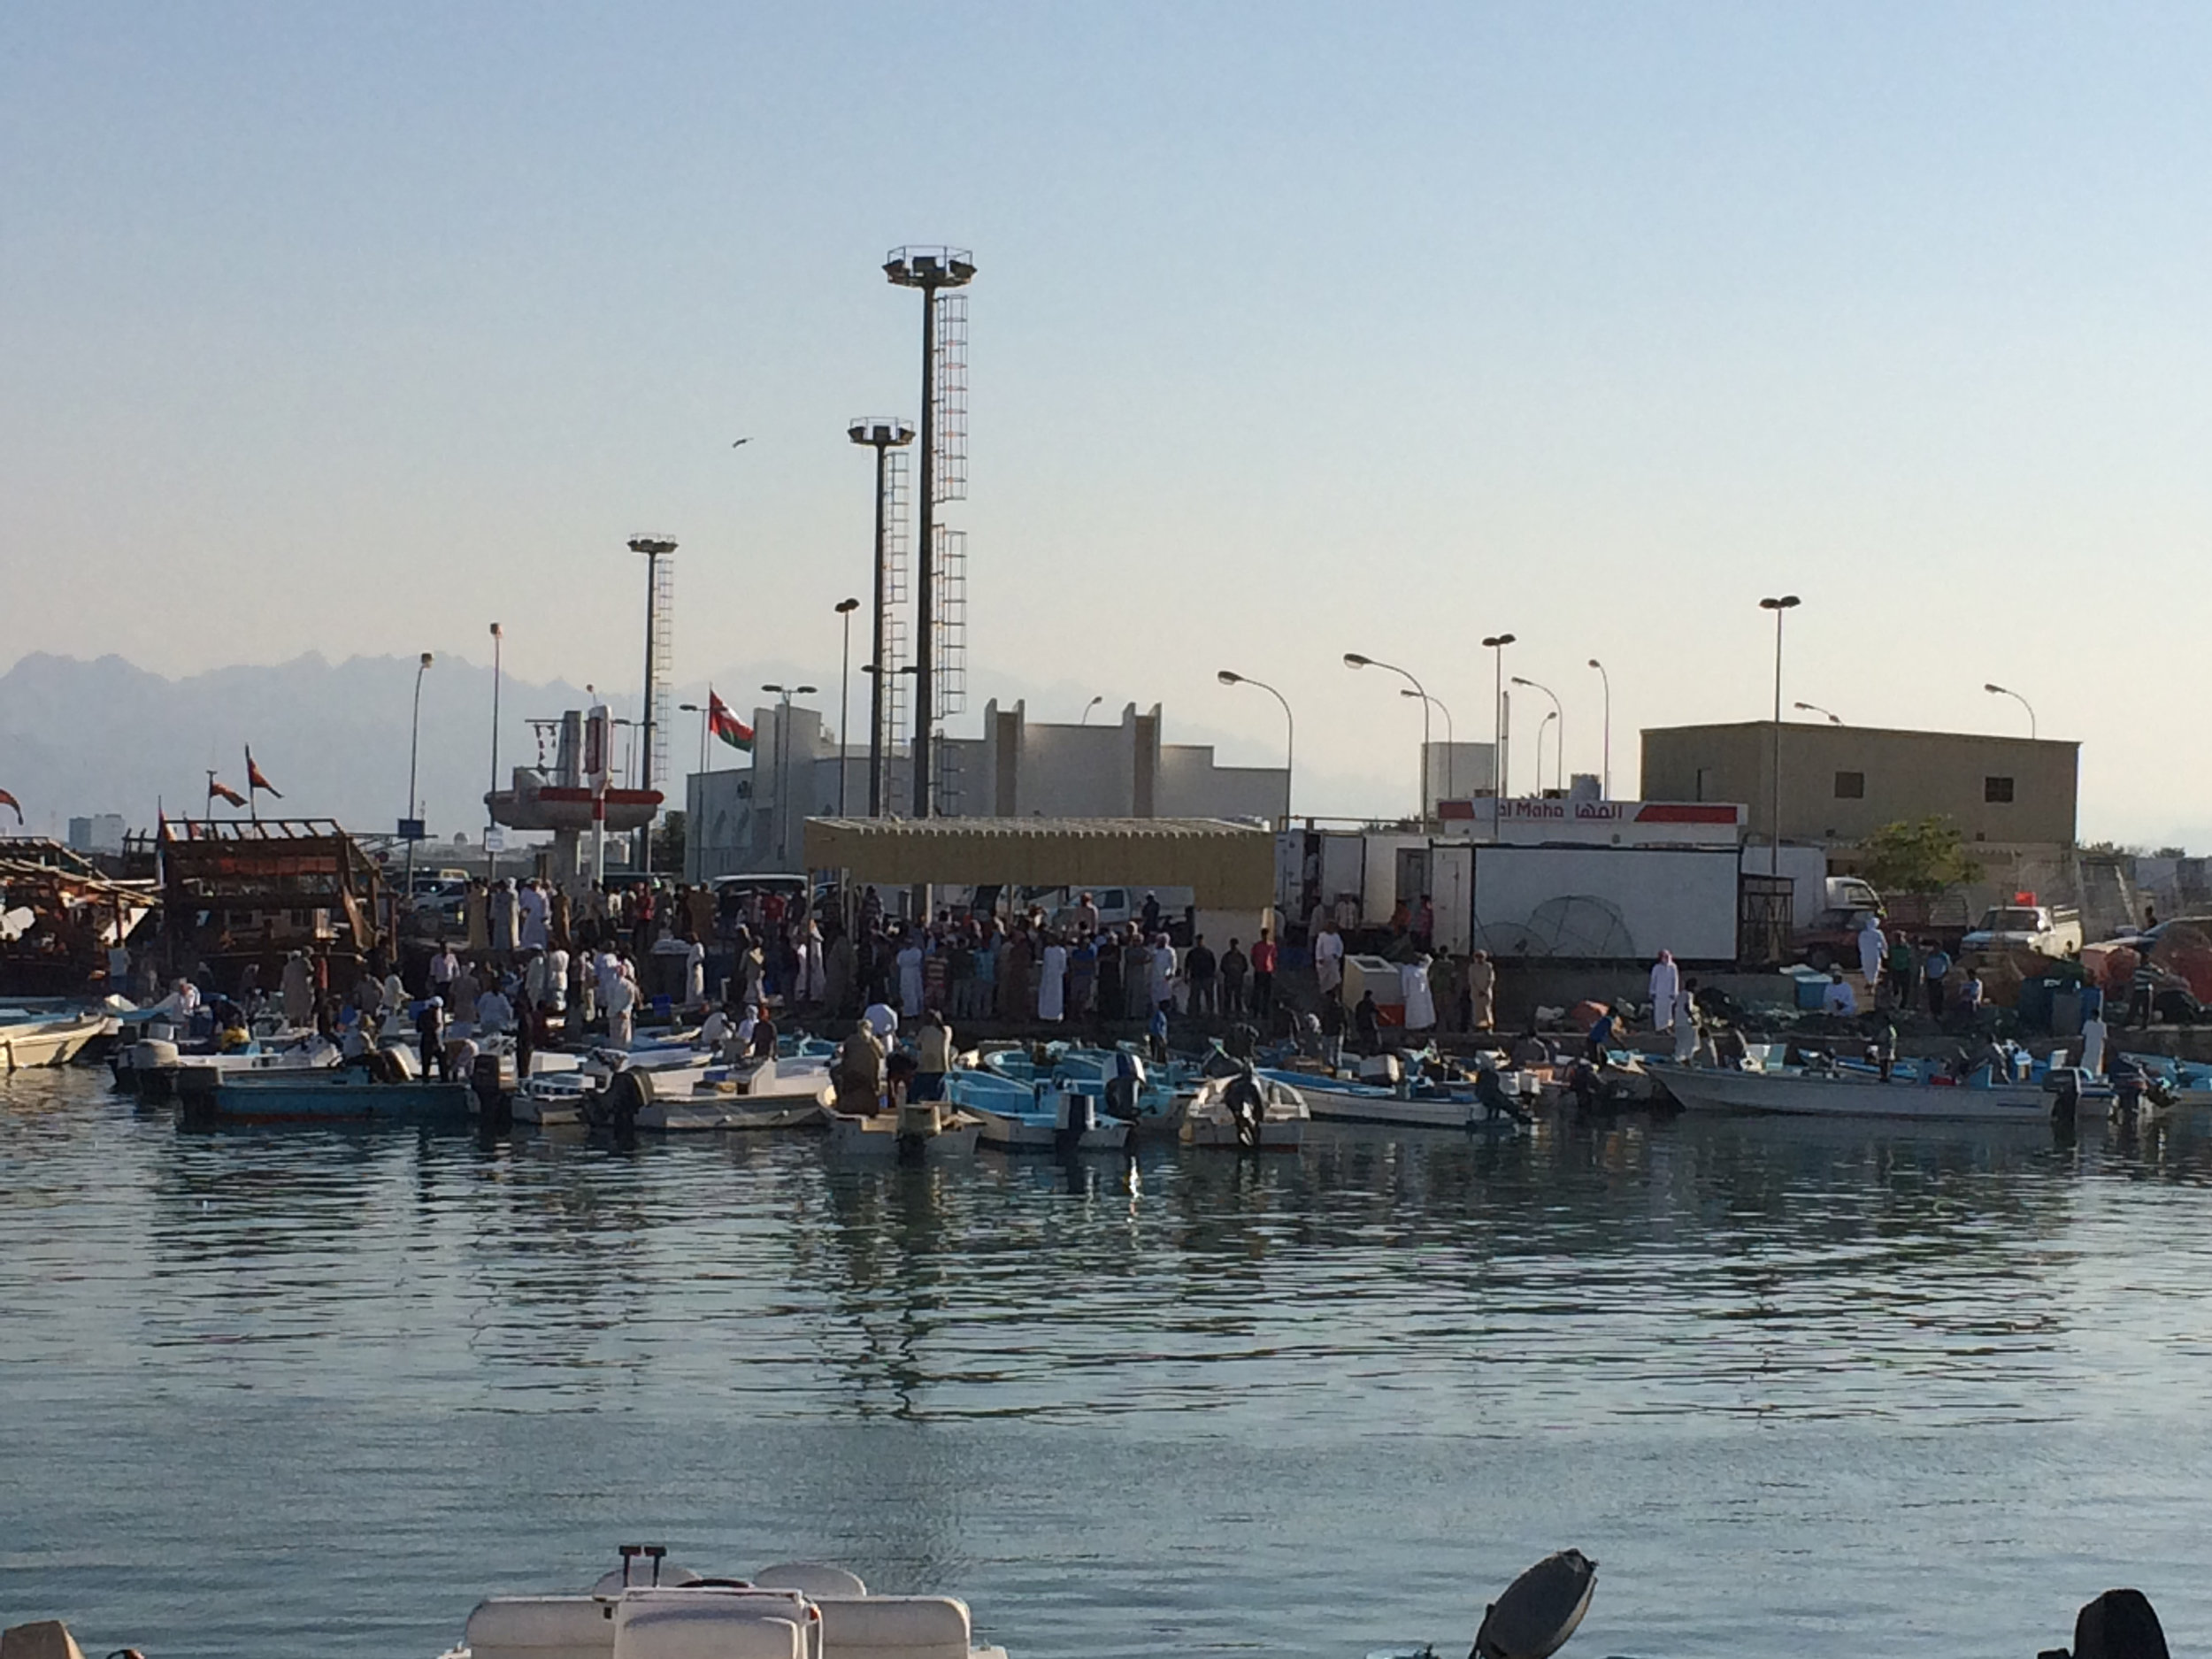 The port in Dibba, Oman was a bustling area of activity.